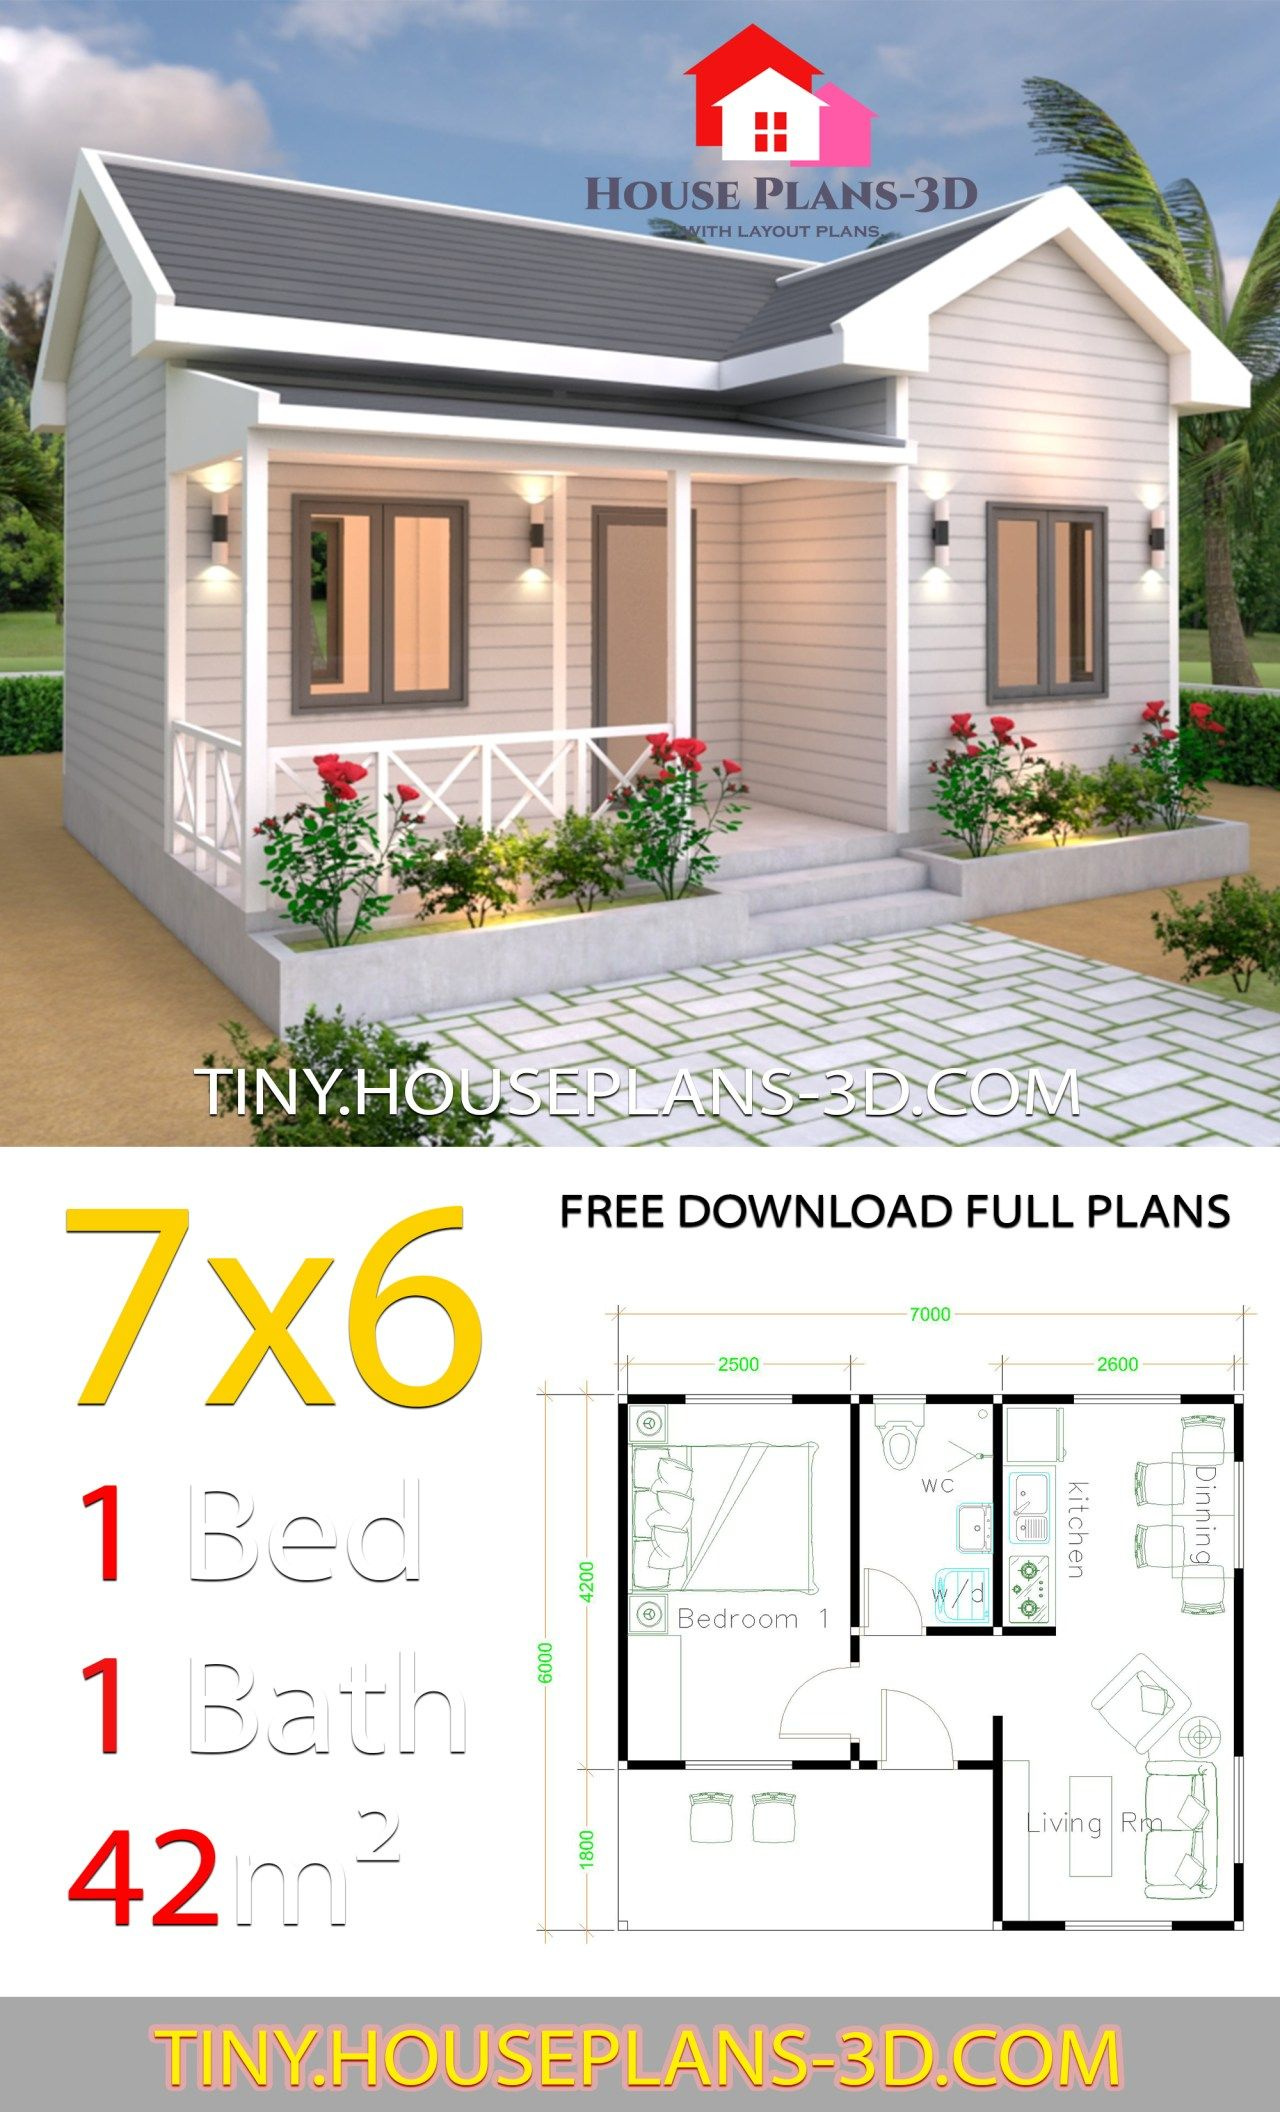 Tiny House Plans 7x6 With One Bedroom Cross Gable Roof Tiny House Plans Craftsman House Plans Small House Floor Plans Small House Design Plans